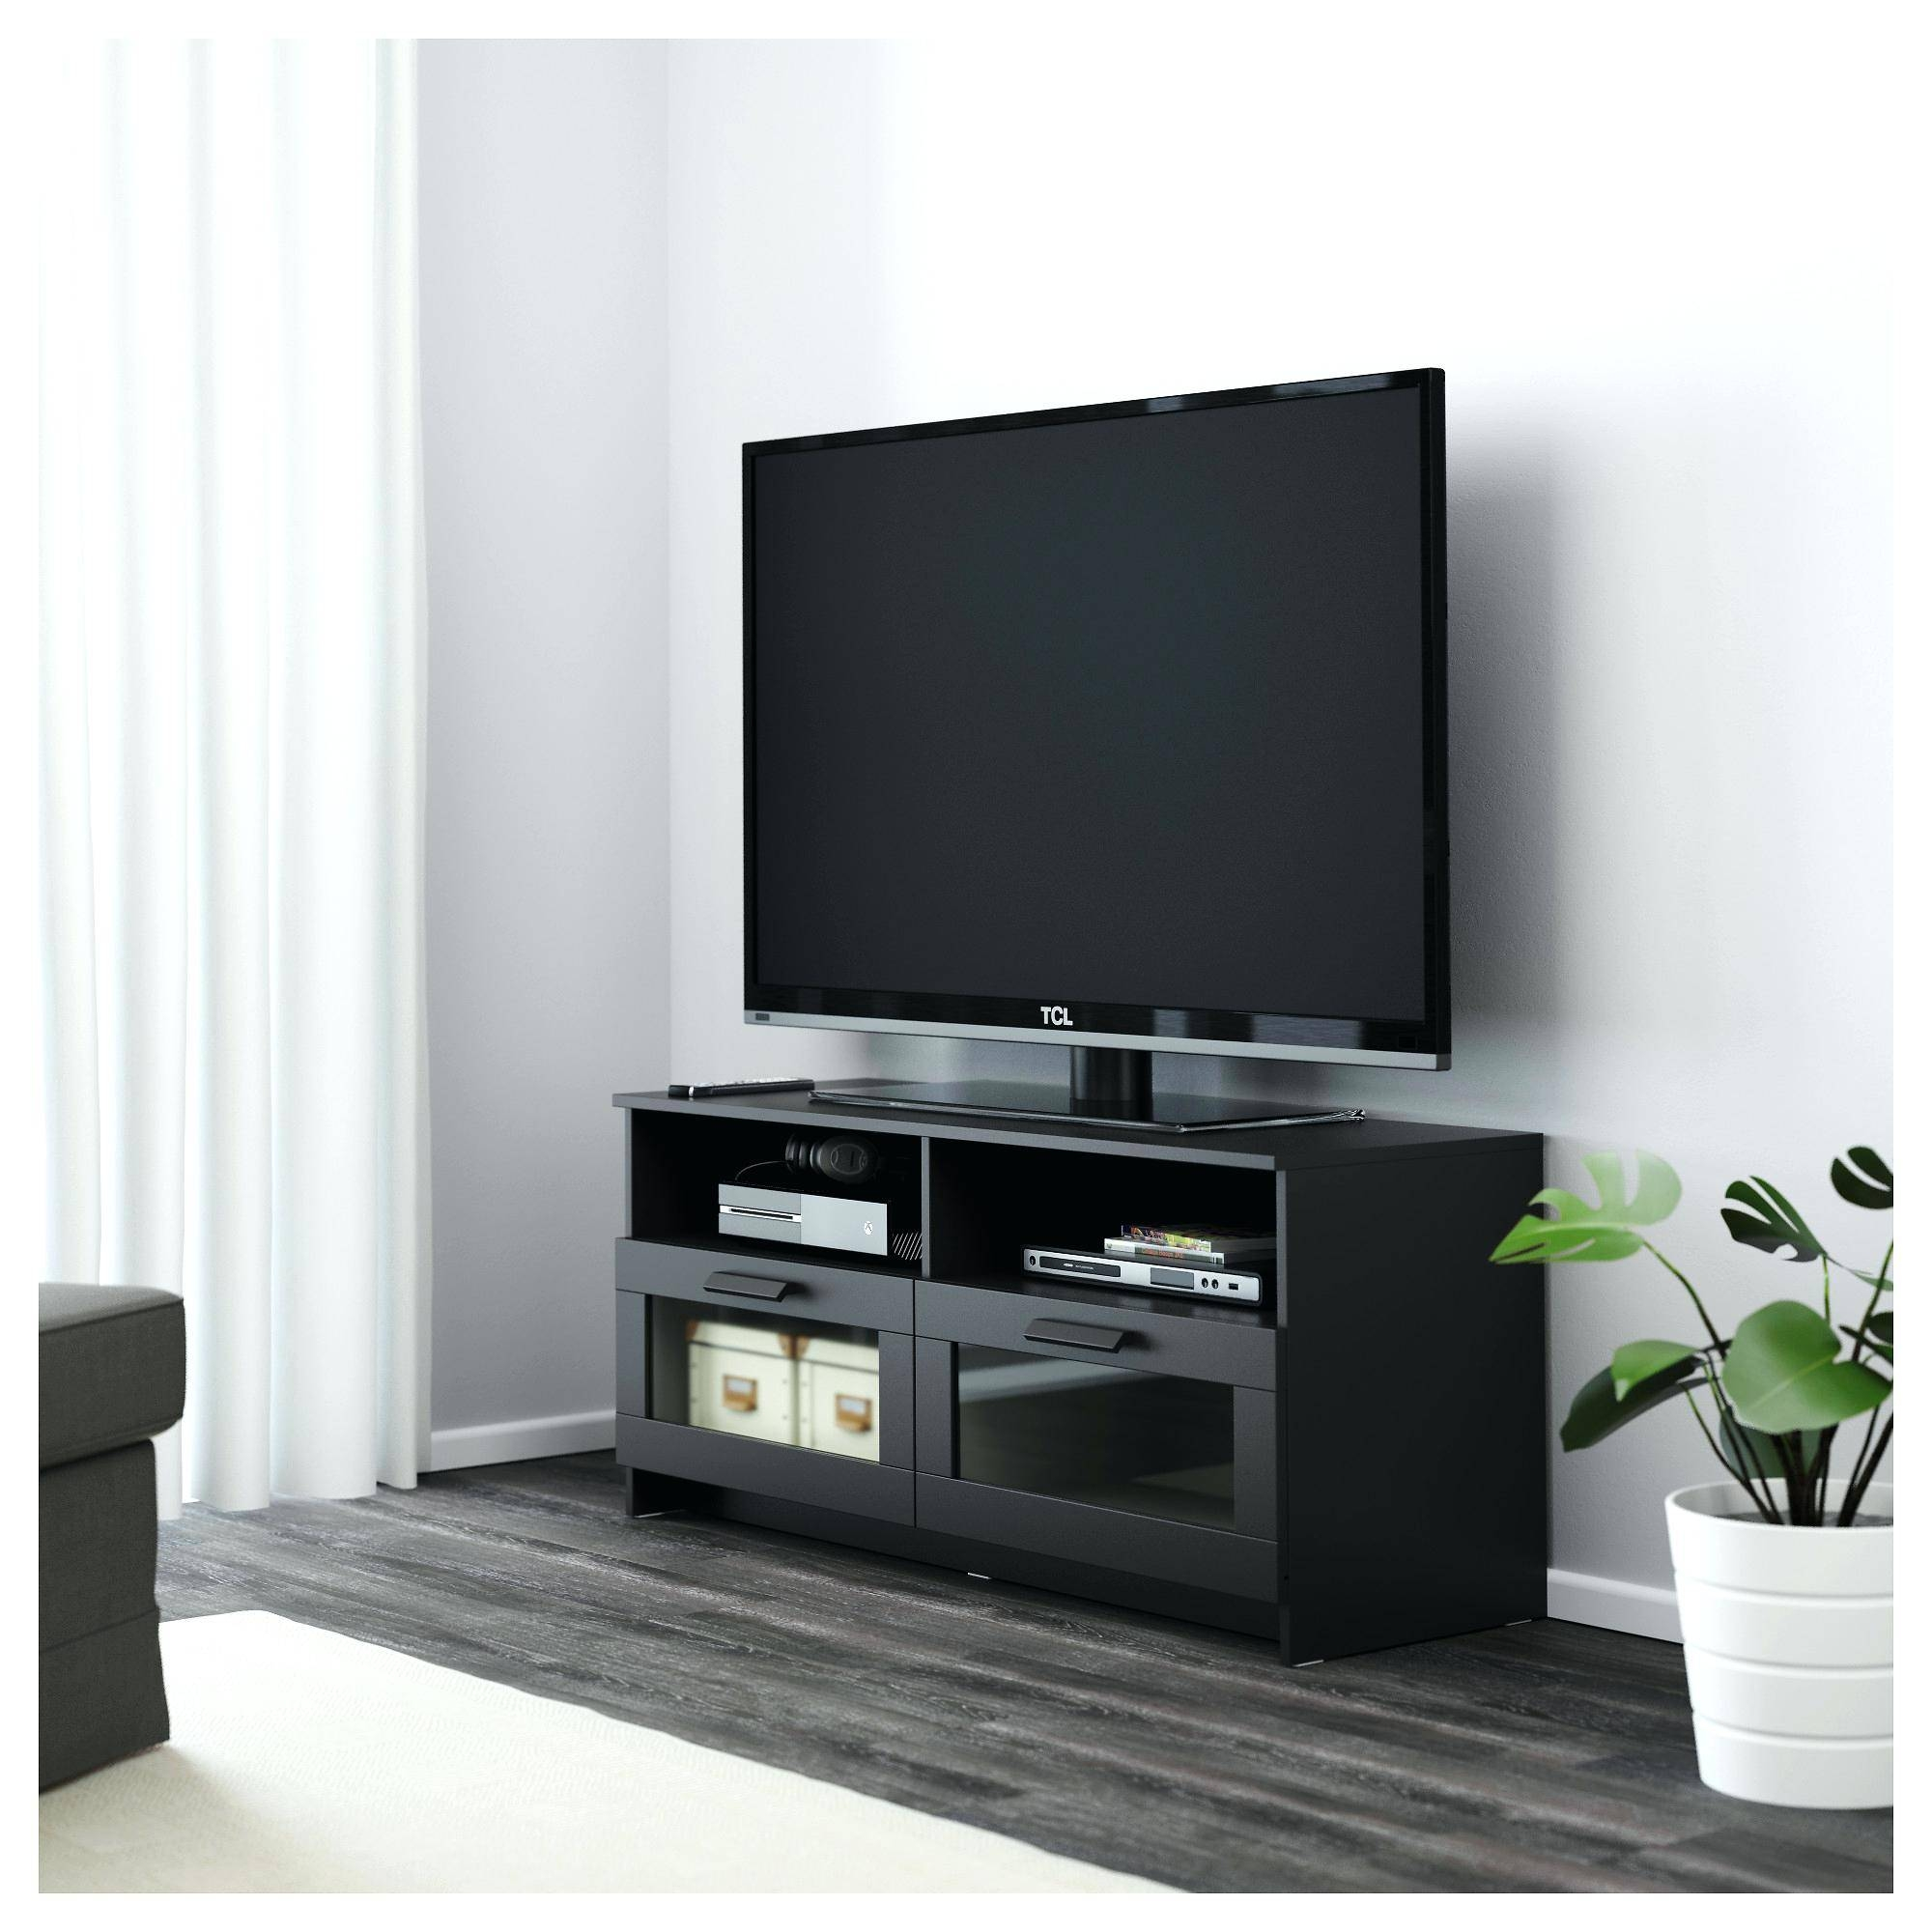 Tv Stand : Large Size Of Tv Standstv Stands Walmart Com Stand For in Techlink Bench Corner Tv Stands (Image 12 of 15)